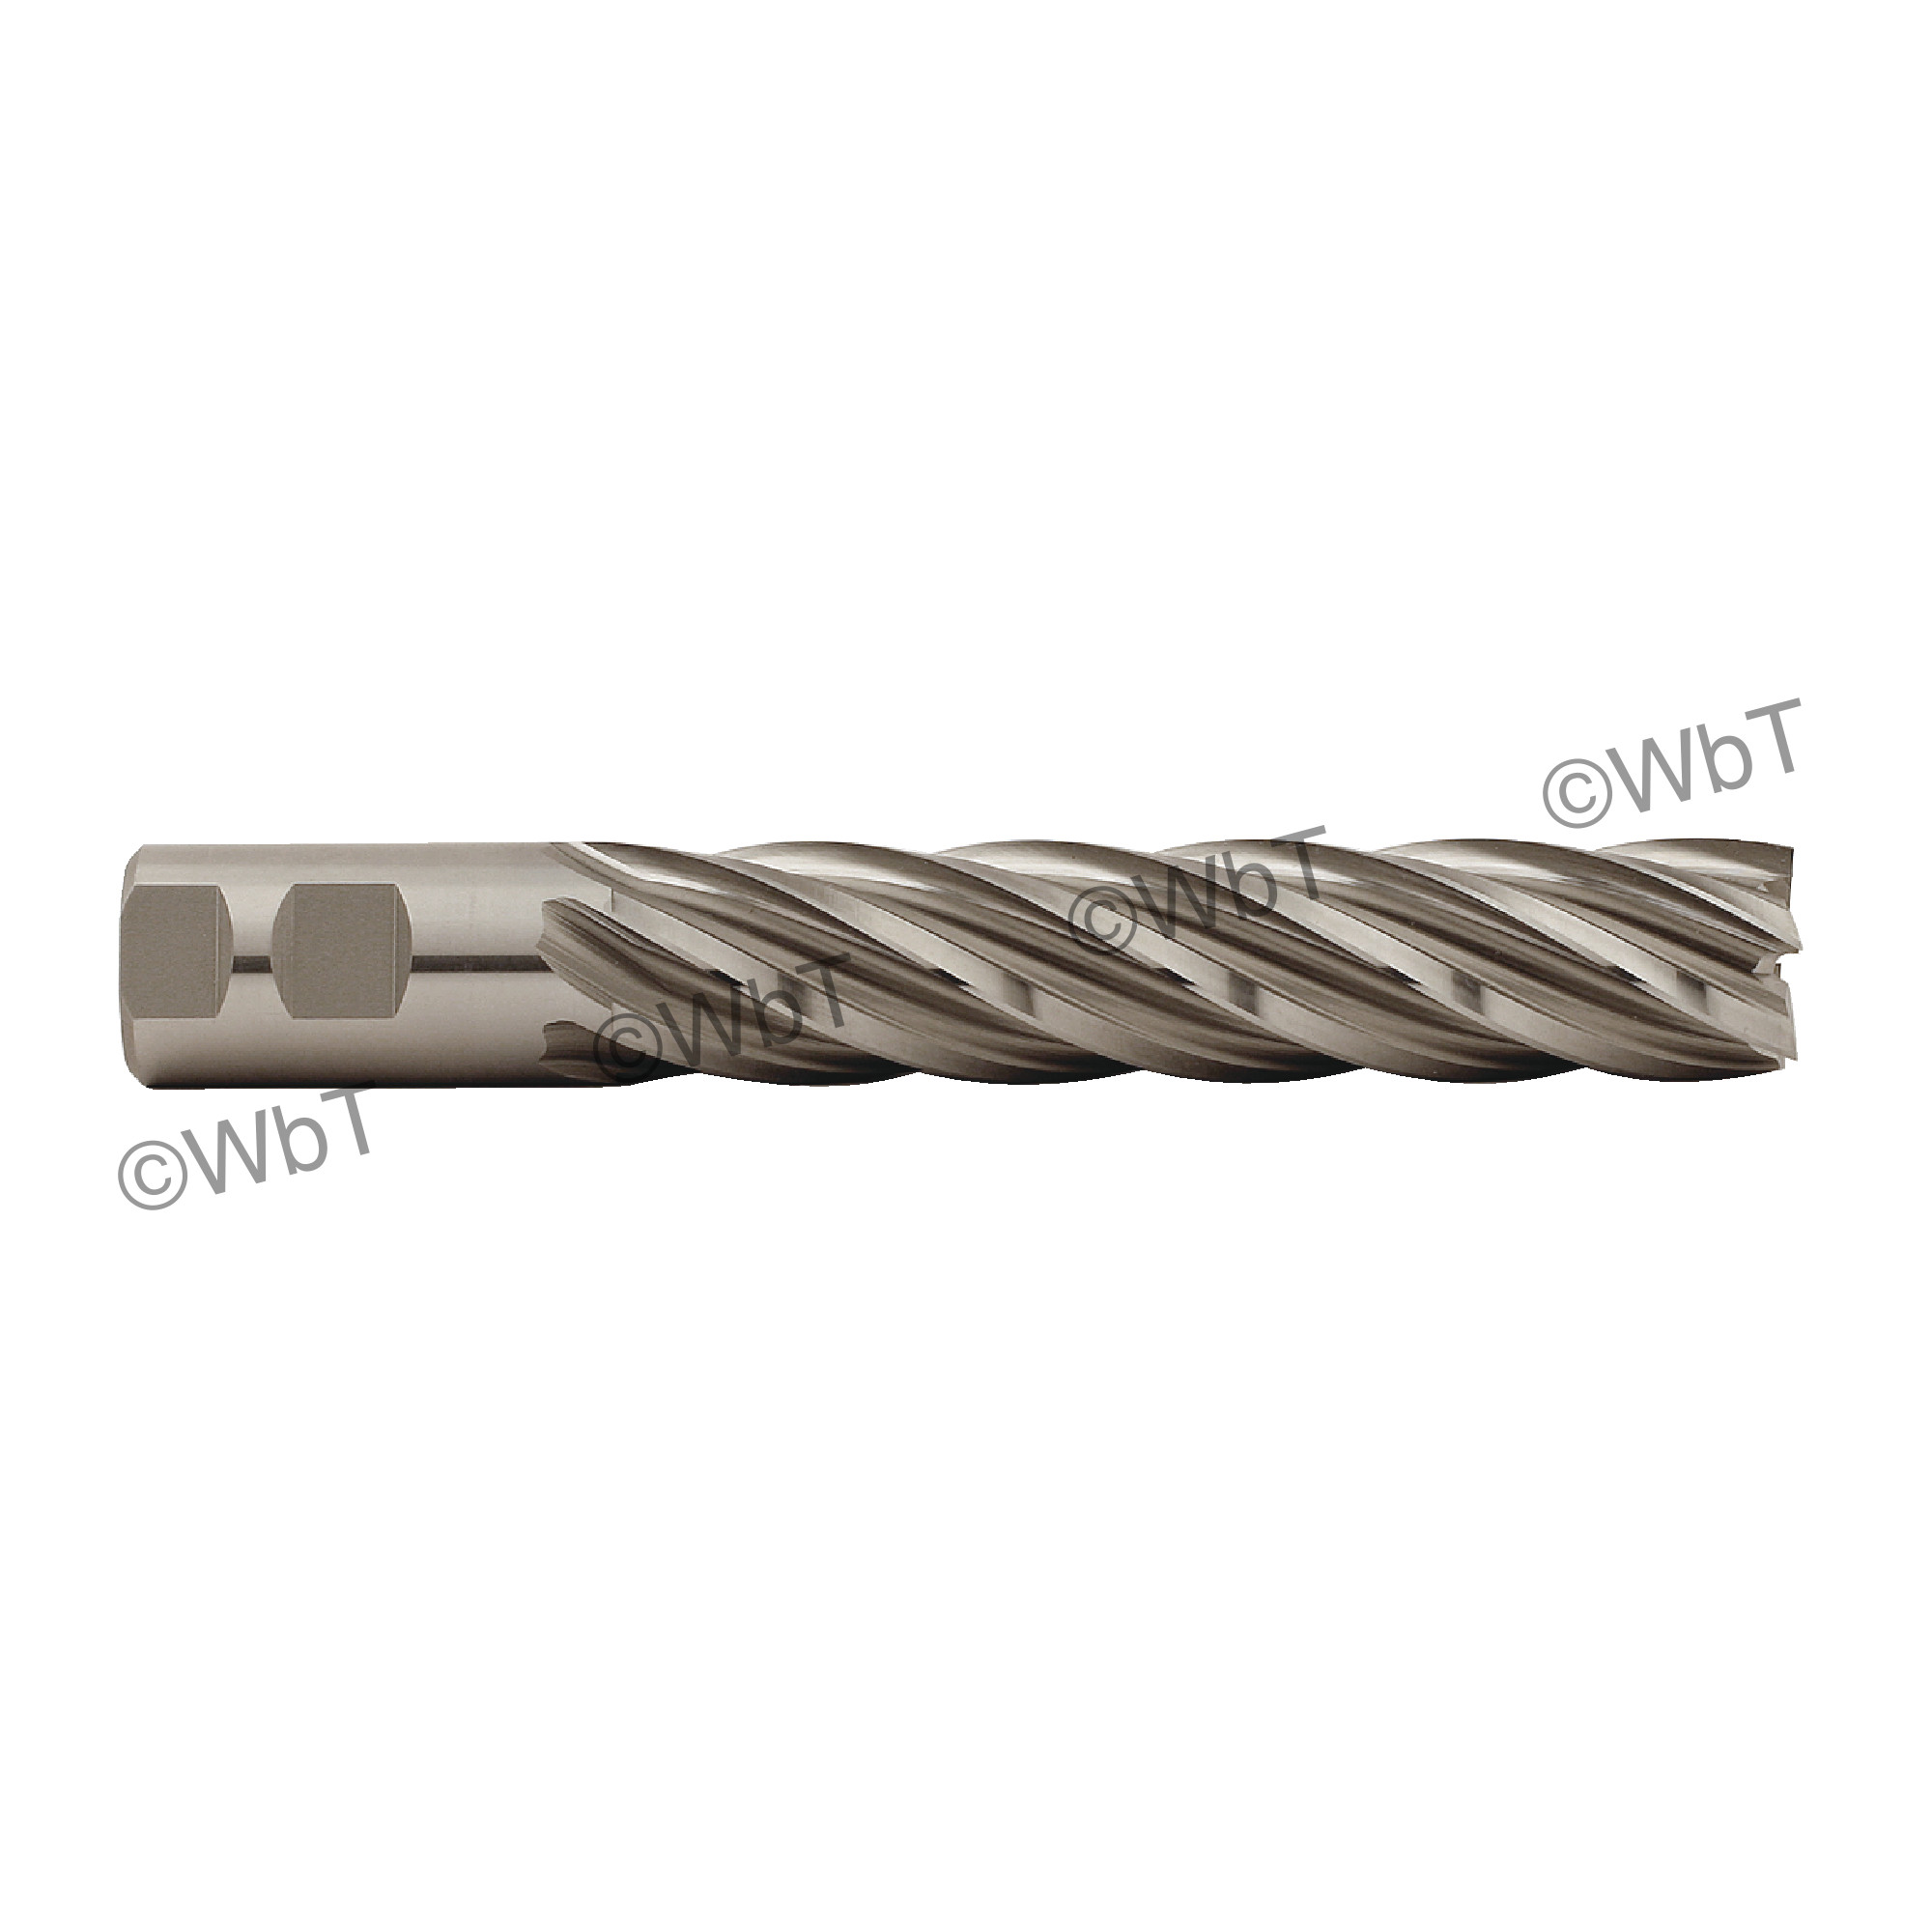 1-1/4 Multi Flute Non Center Cutting X-Long End Mill